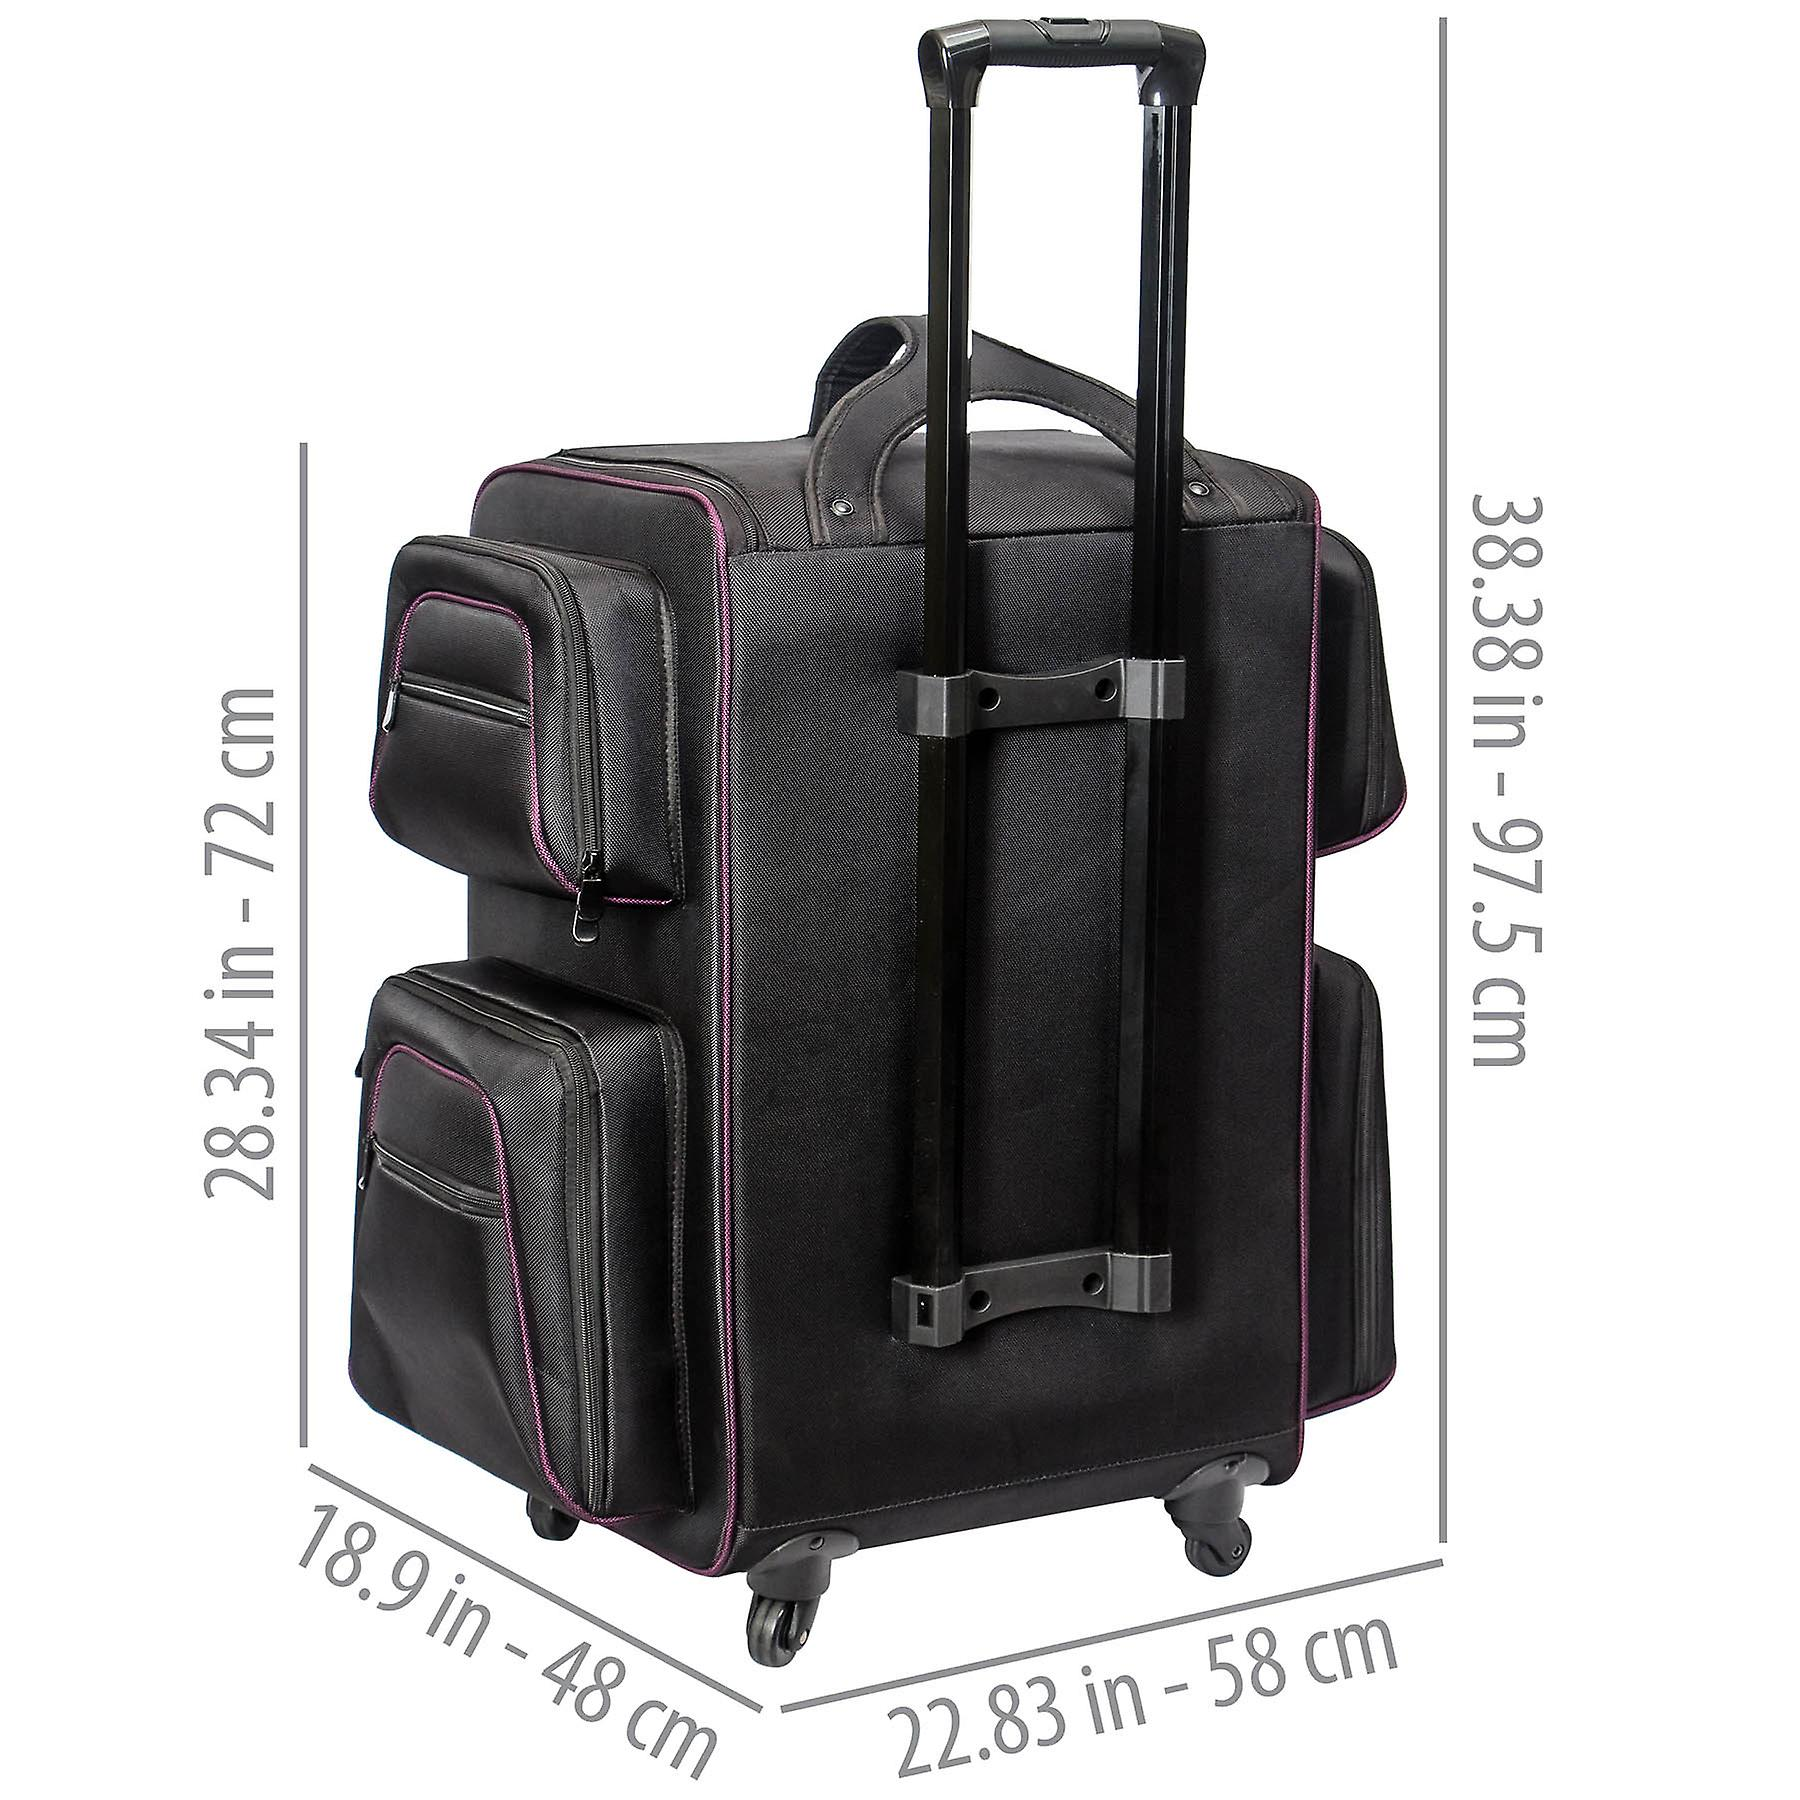 SAC de maquillage DE voyage SHANY Total Jetsetter - XL Soft Travel Cosmetics Bag with Multiple Compartment - 10 Free Makeup Organizers - Makeup Trolley - Backpack - BLACK